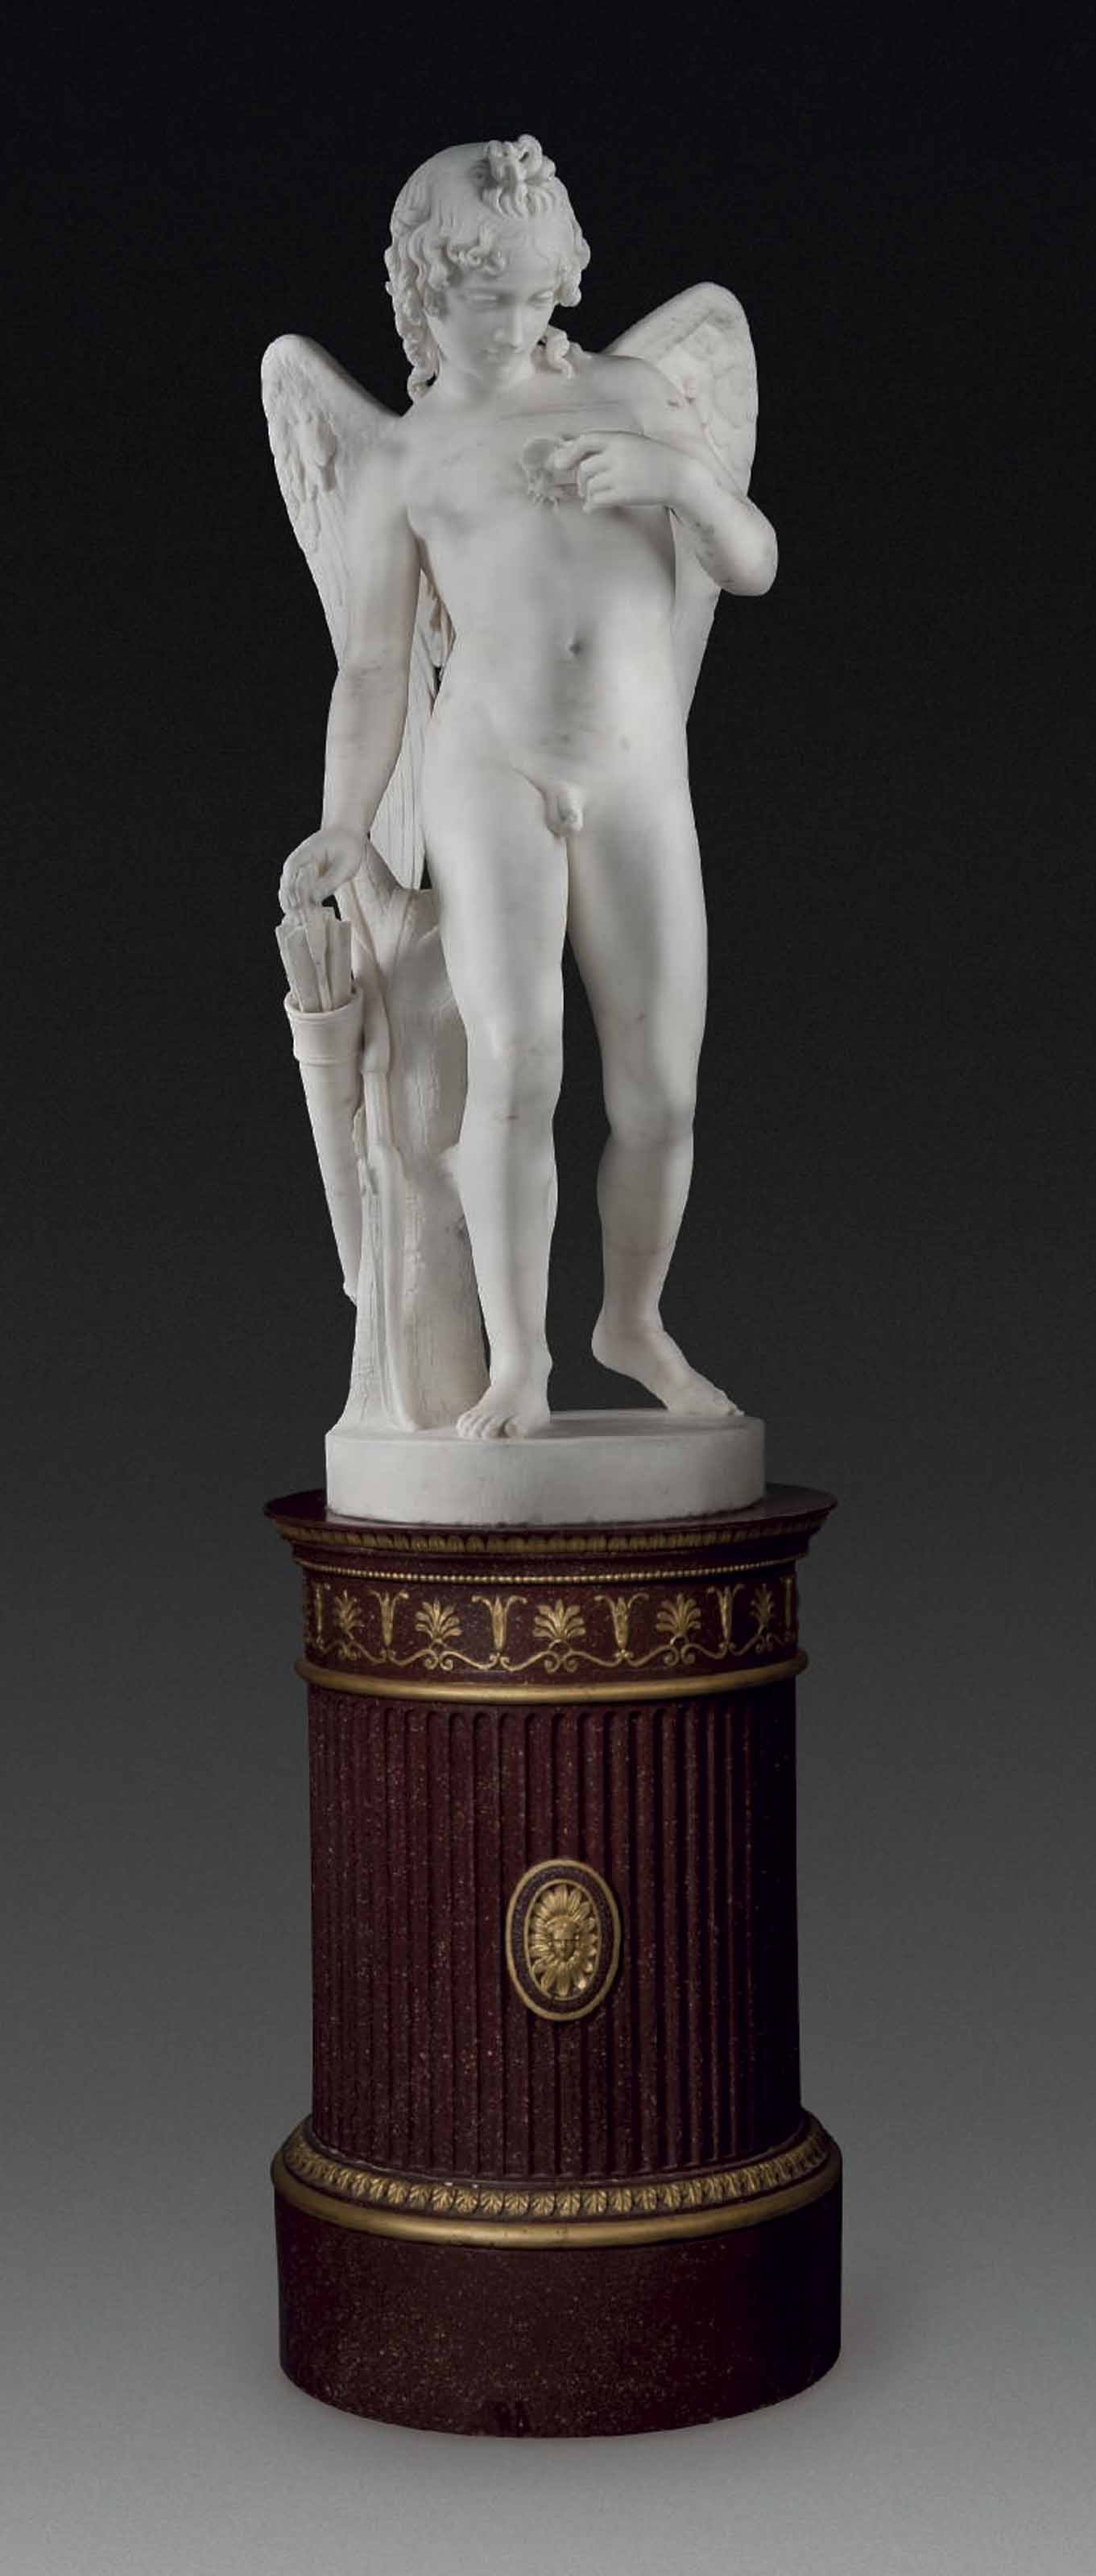 A LIFE-SIZE MARBLE FIGURE OF CUPID, ENTITLED 'LOVE TORMENTING THE SOUL'